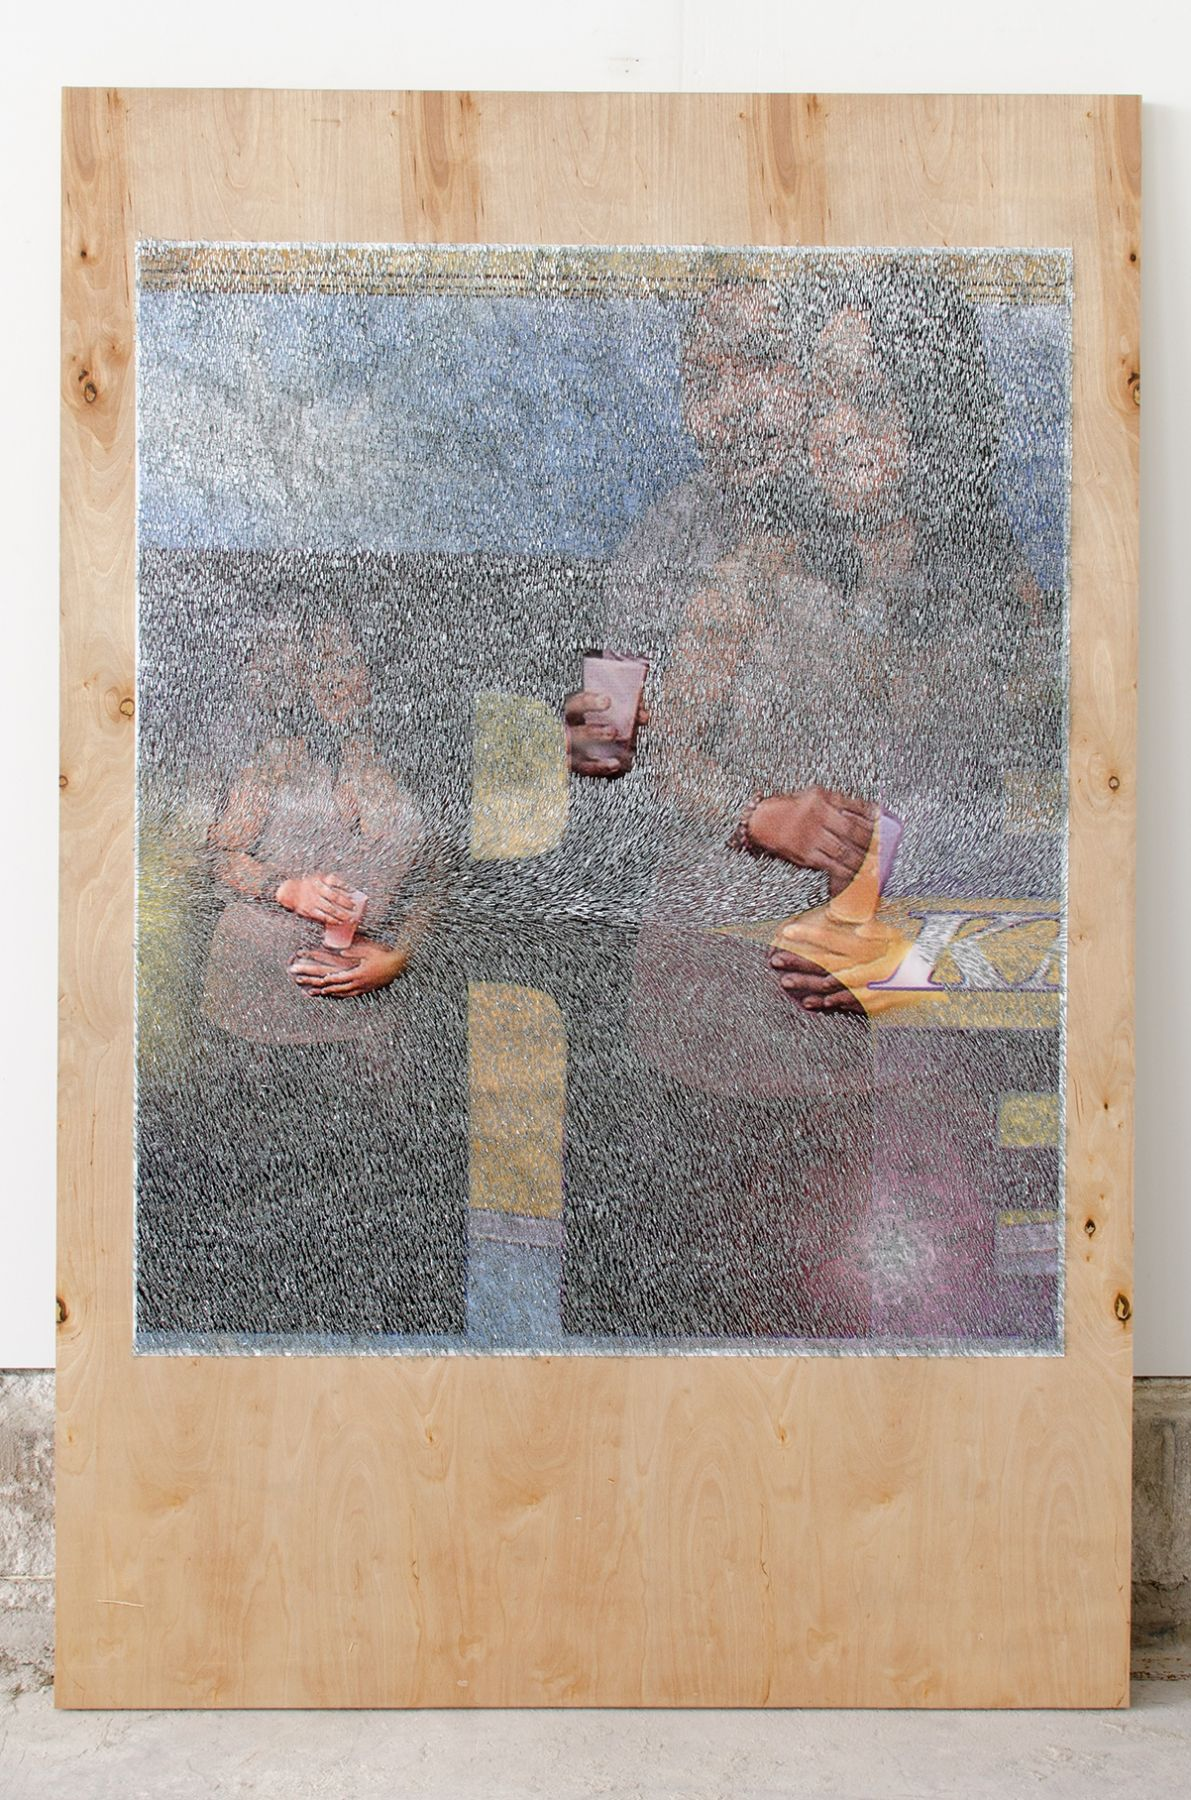 Wilmer Wilson IV REAL KNOW REAL 2016, mixed media on wood, 72 x 48 inches